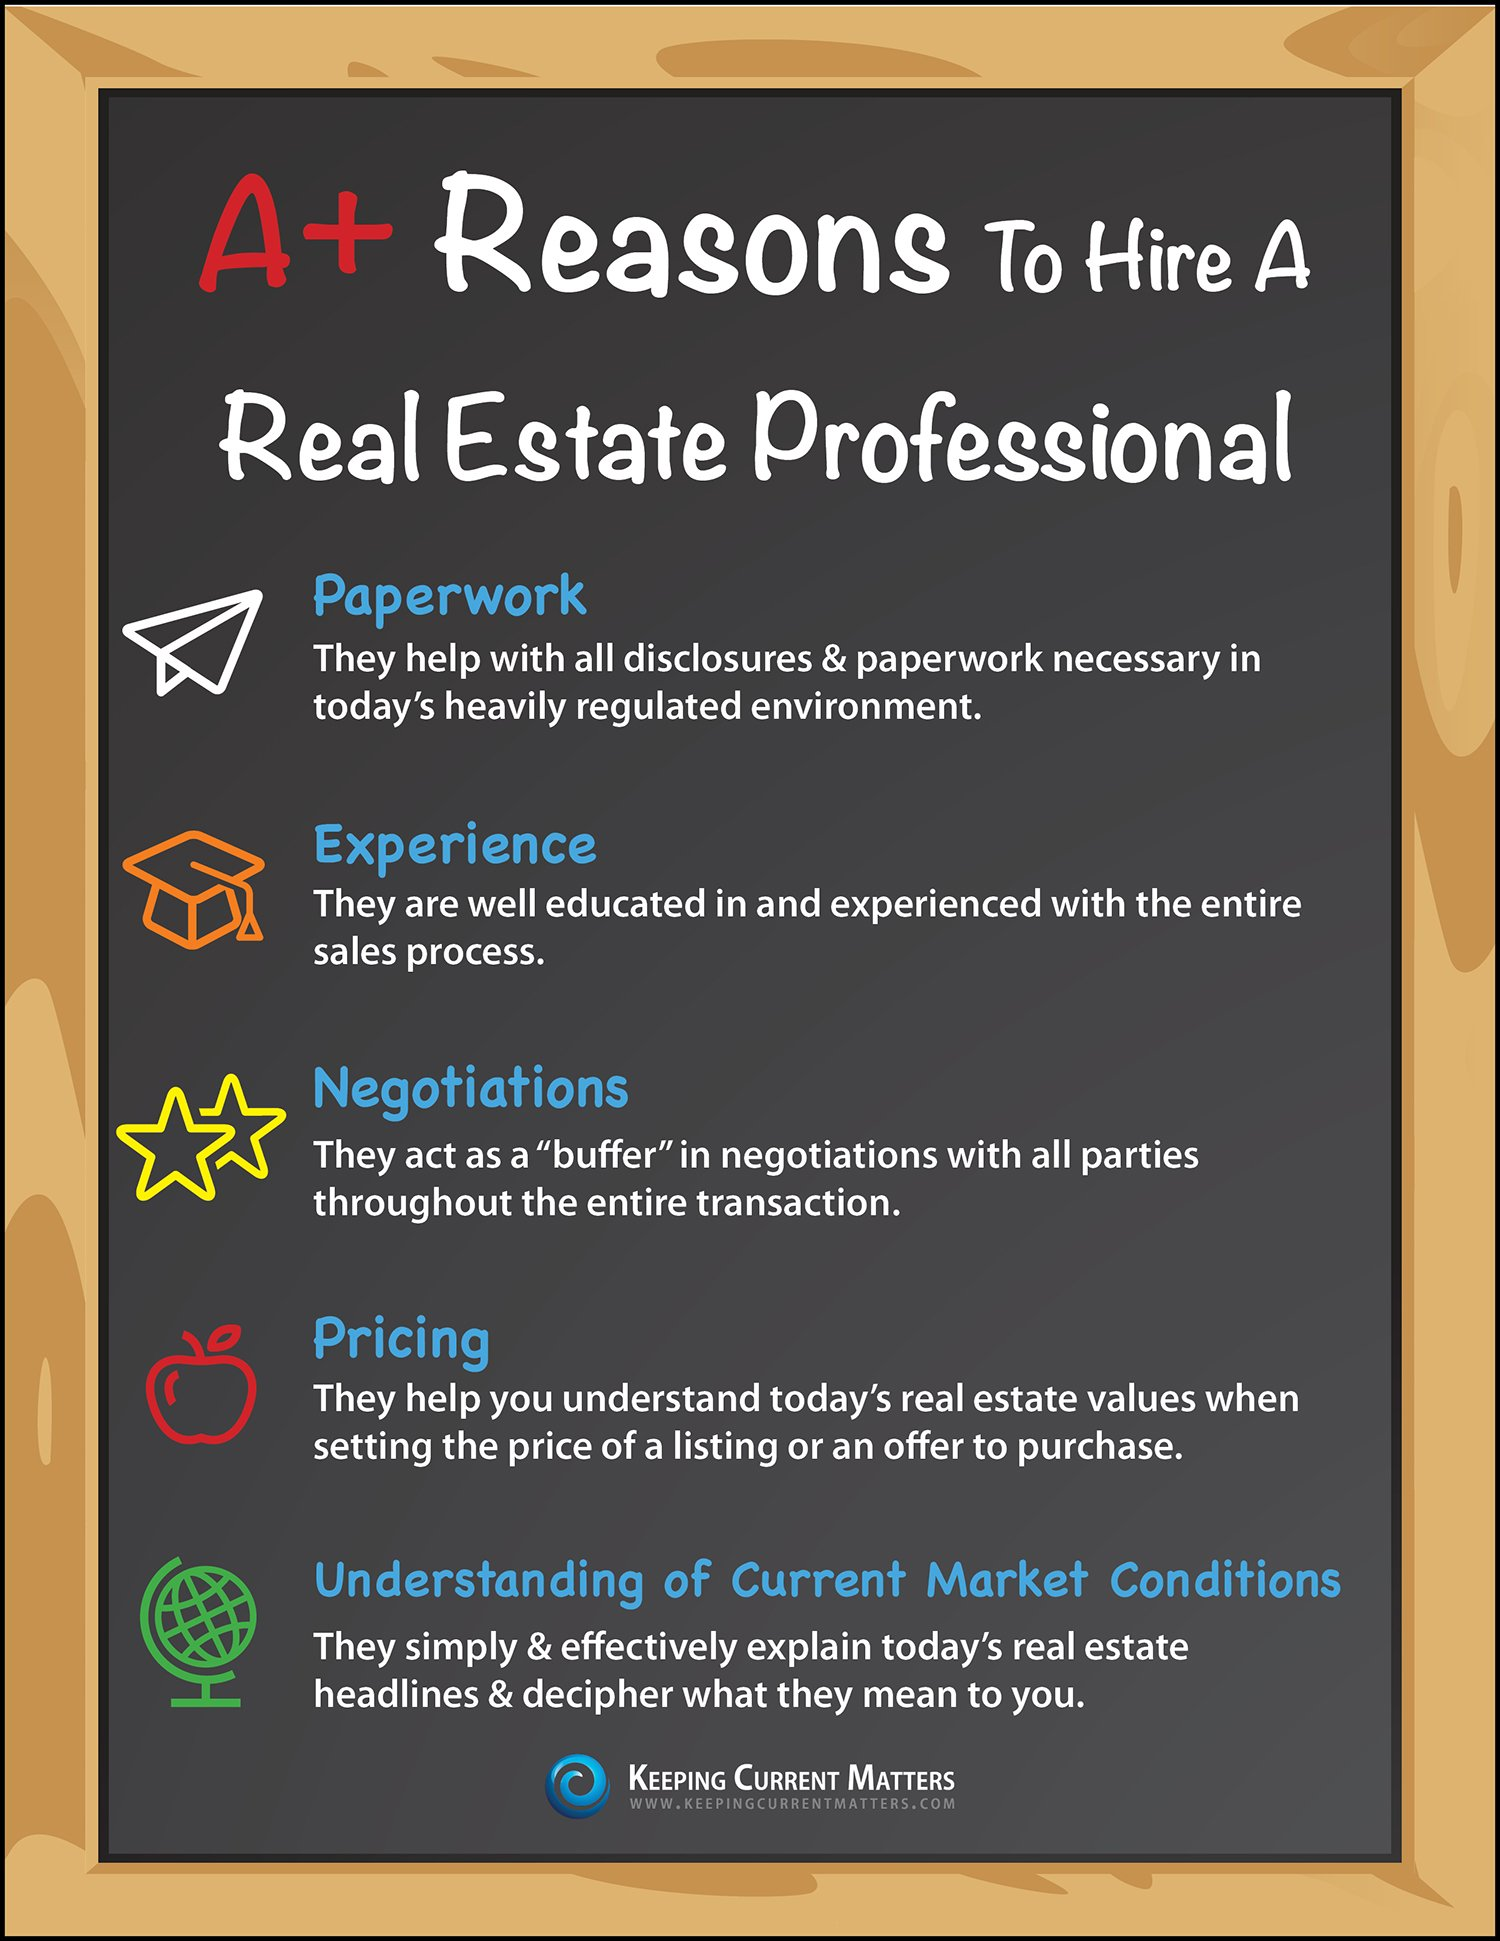 a reasons to hire a real estate professional infographic keeping